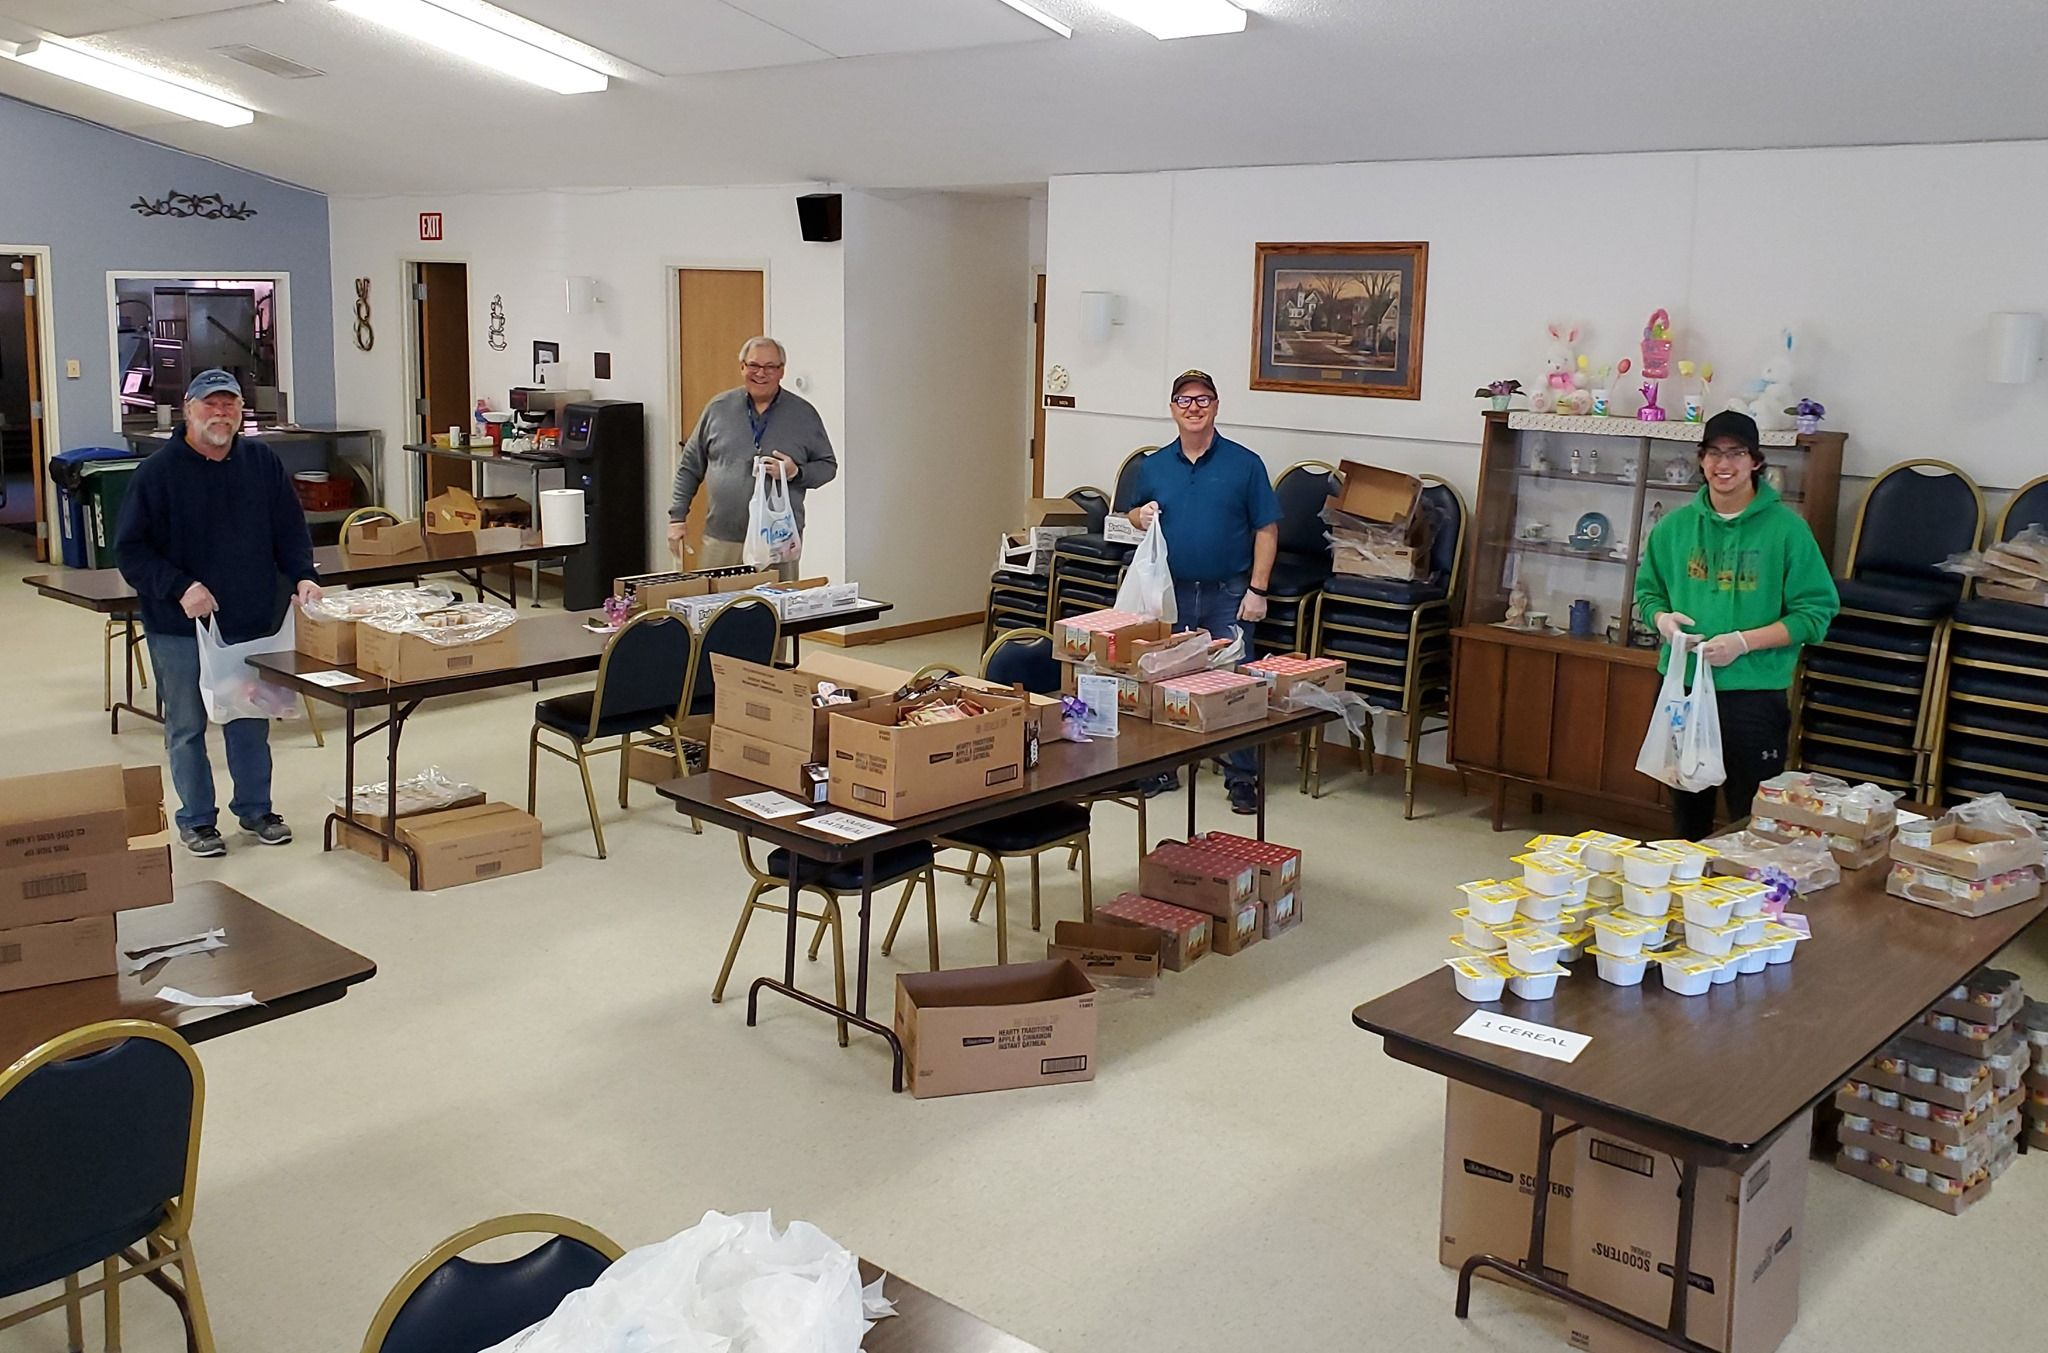 Glenwood business helps hungry students in United Way effort